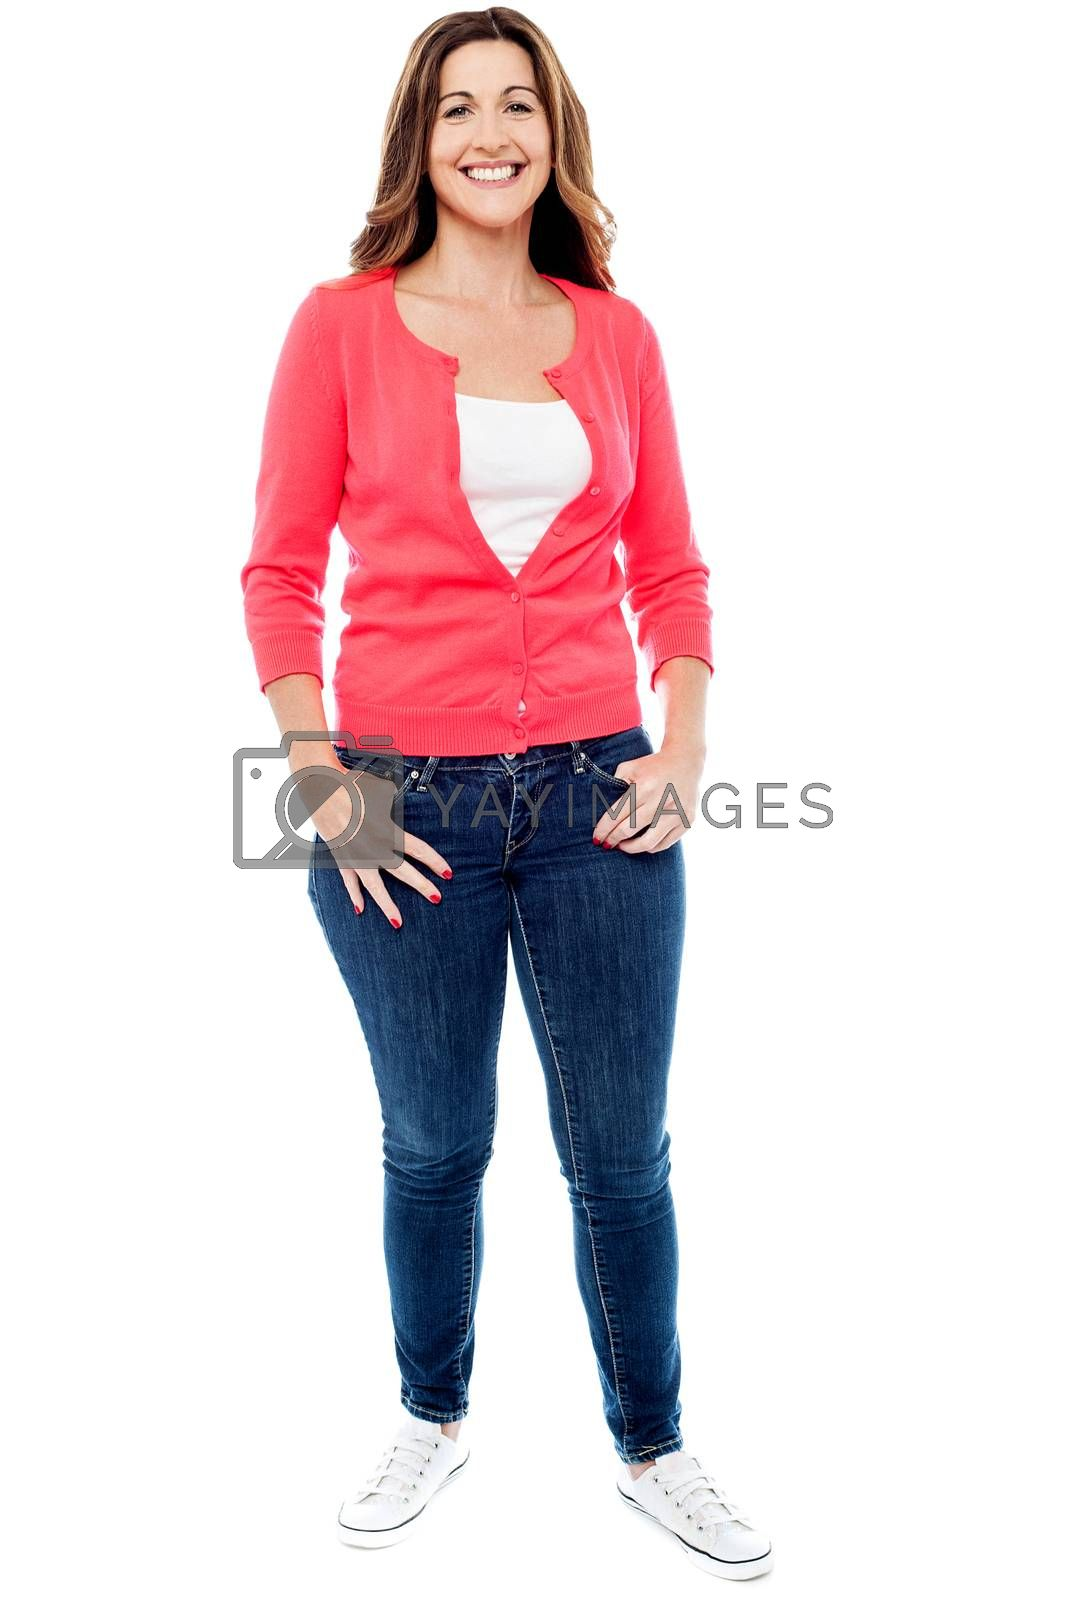 Full length image of a stylish middle aged woman